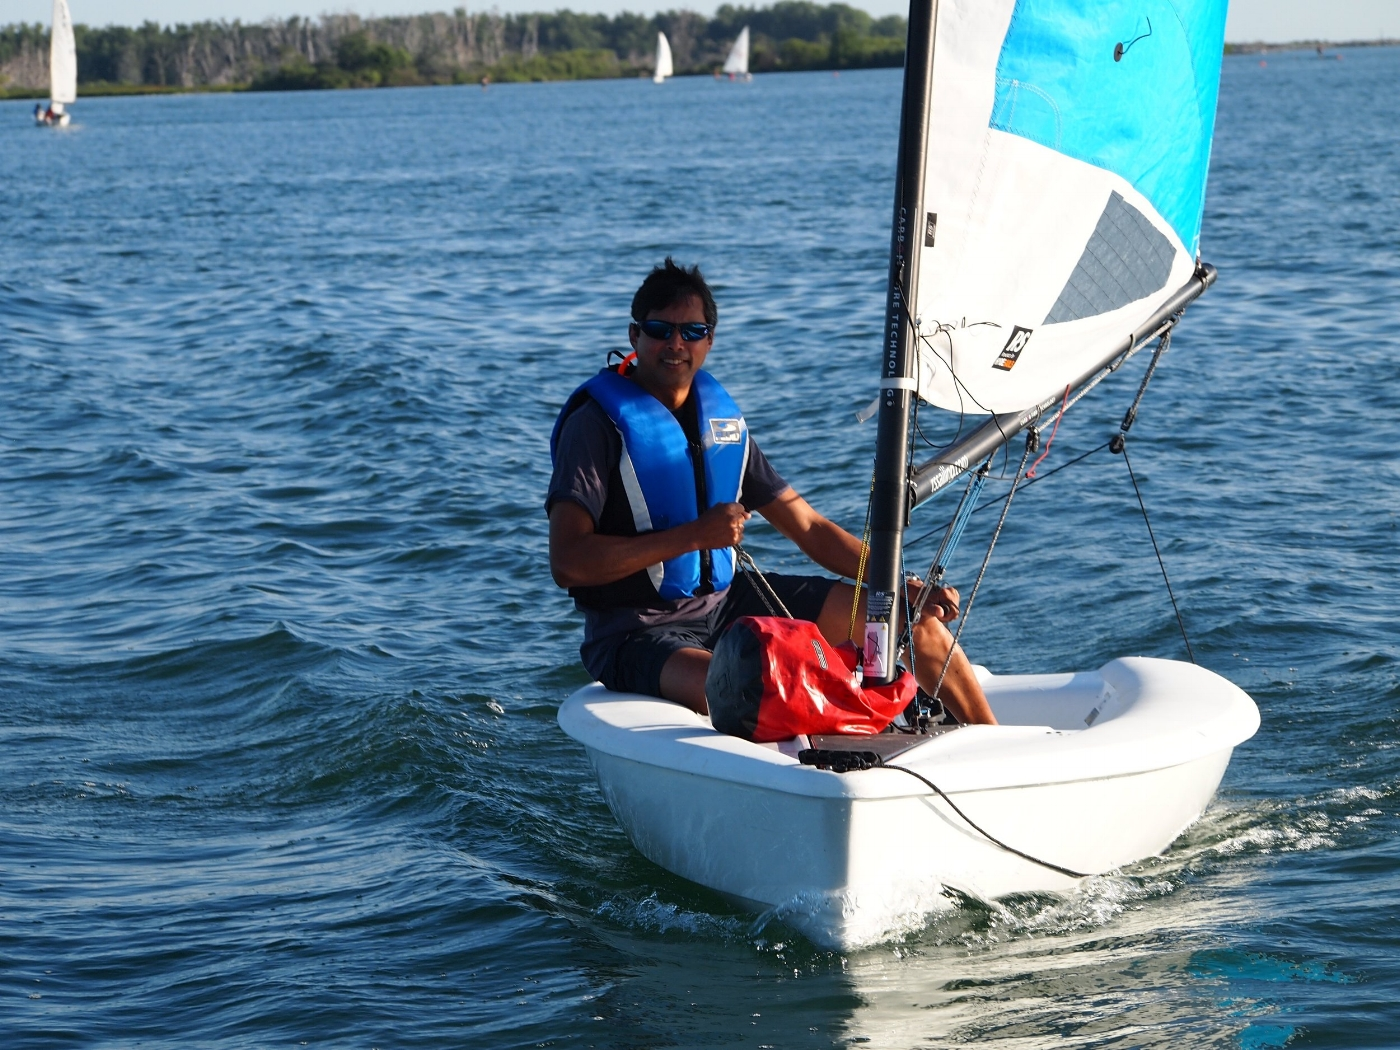 Sailing Fanatics - learn to sail with CANSail 2 beginner intermediate sailing class in Toronto gain confidence and sailing skill